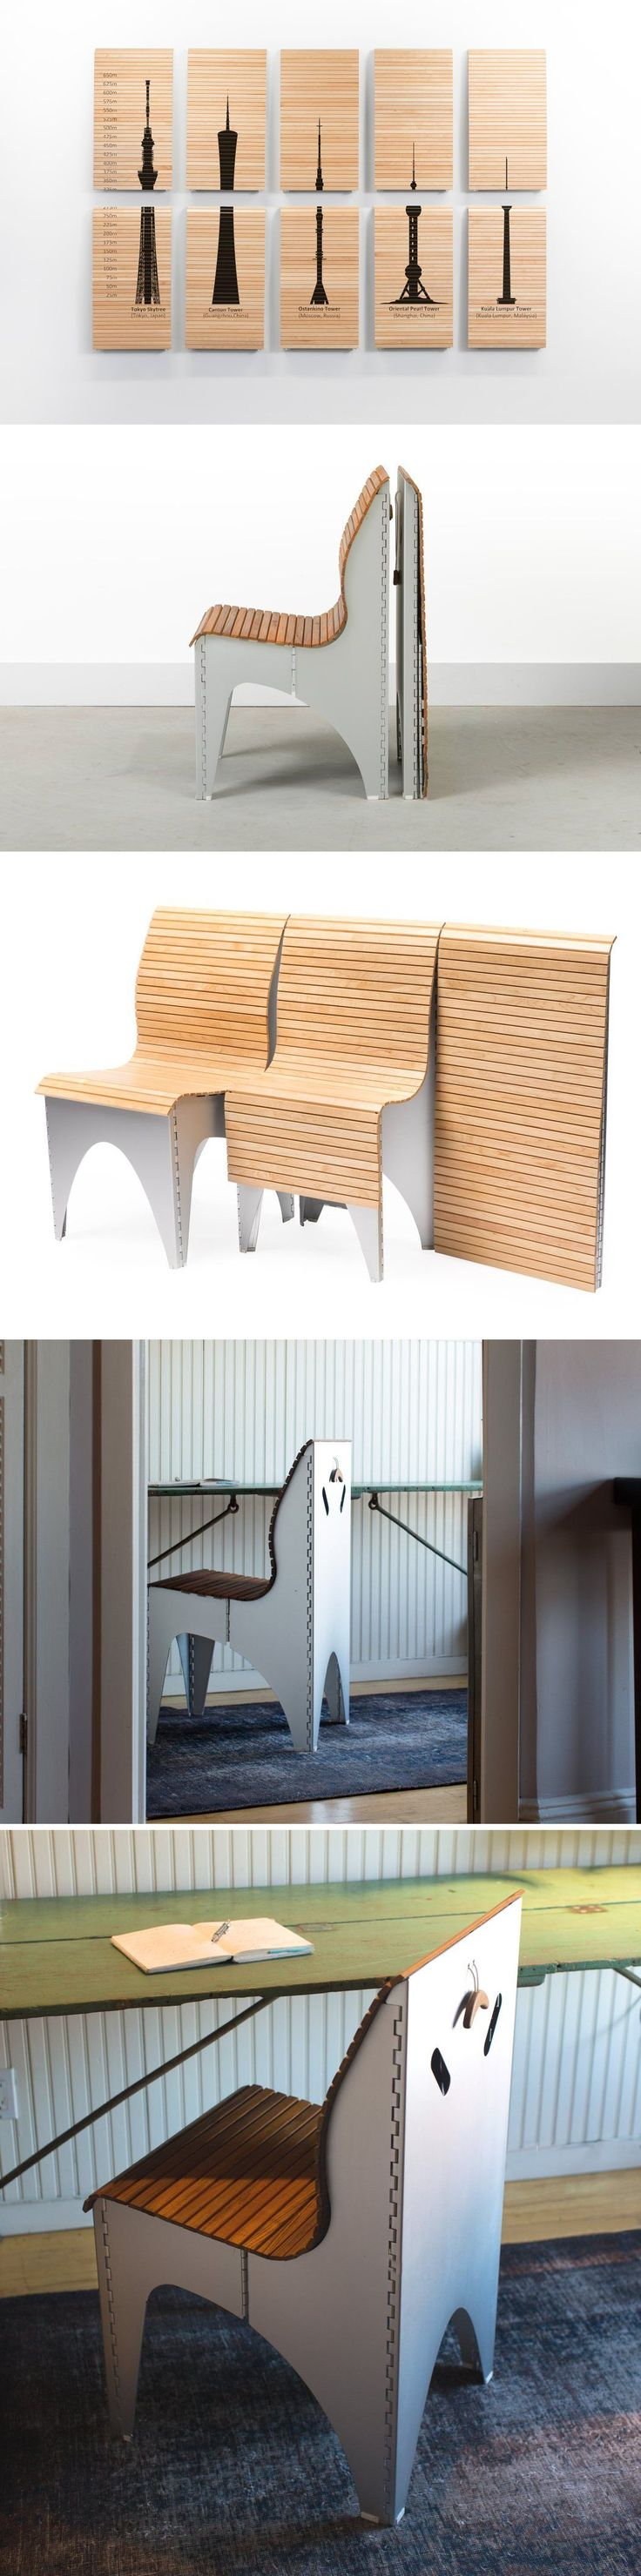 Best 25 Fold out chair ideas on Pinterest